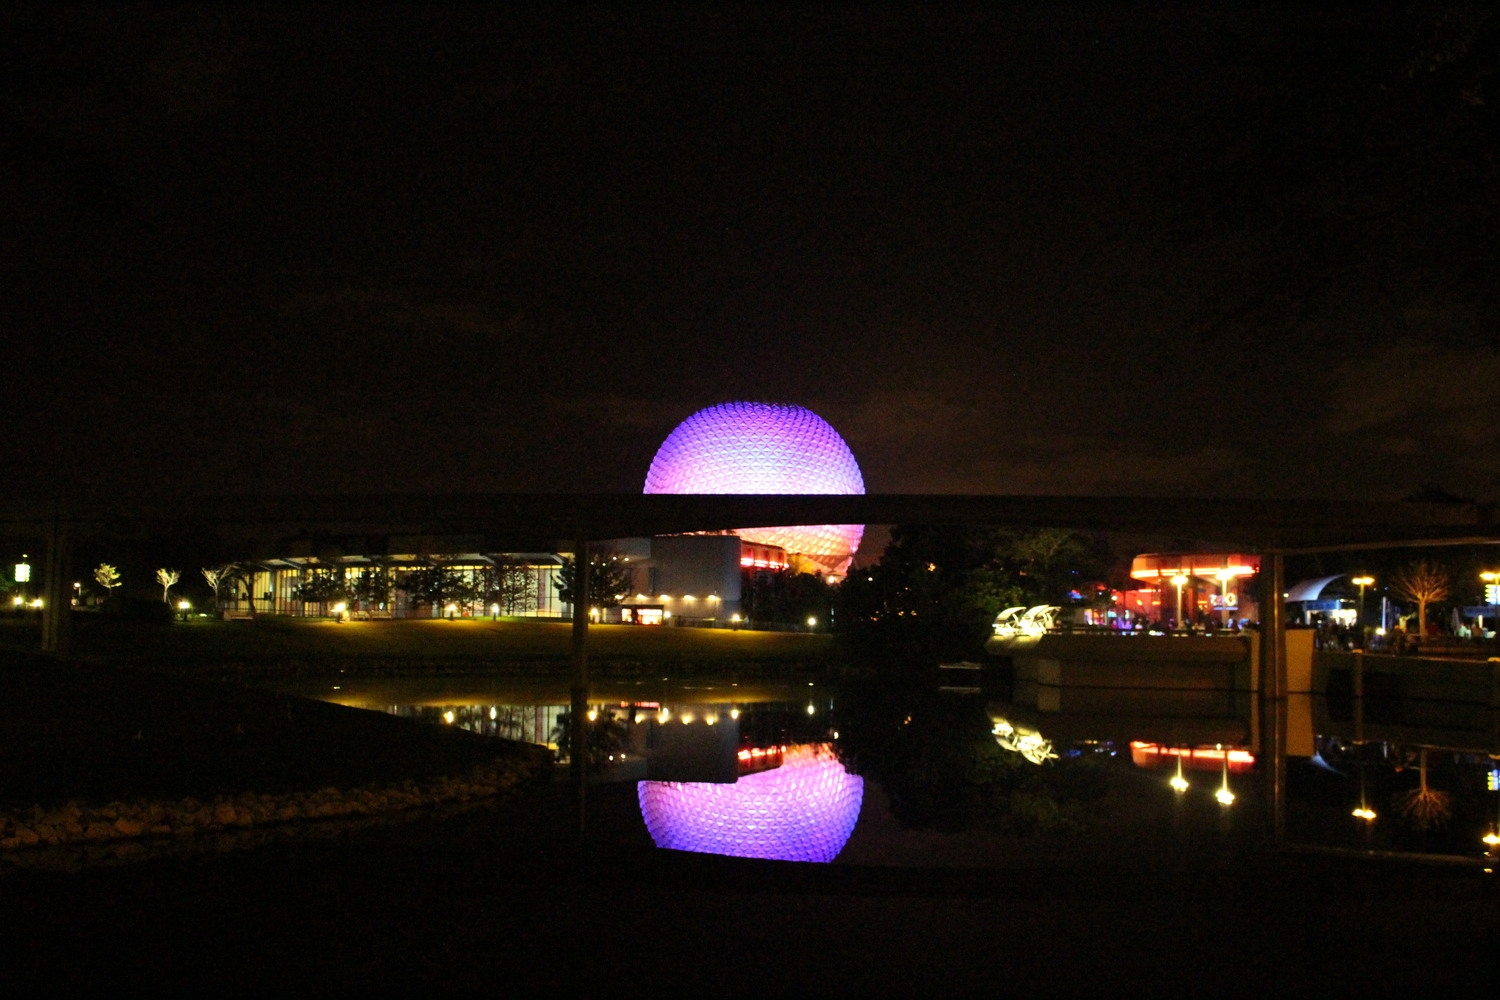 Good night, Epcot!